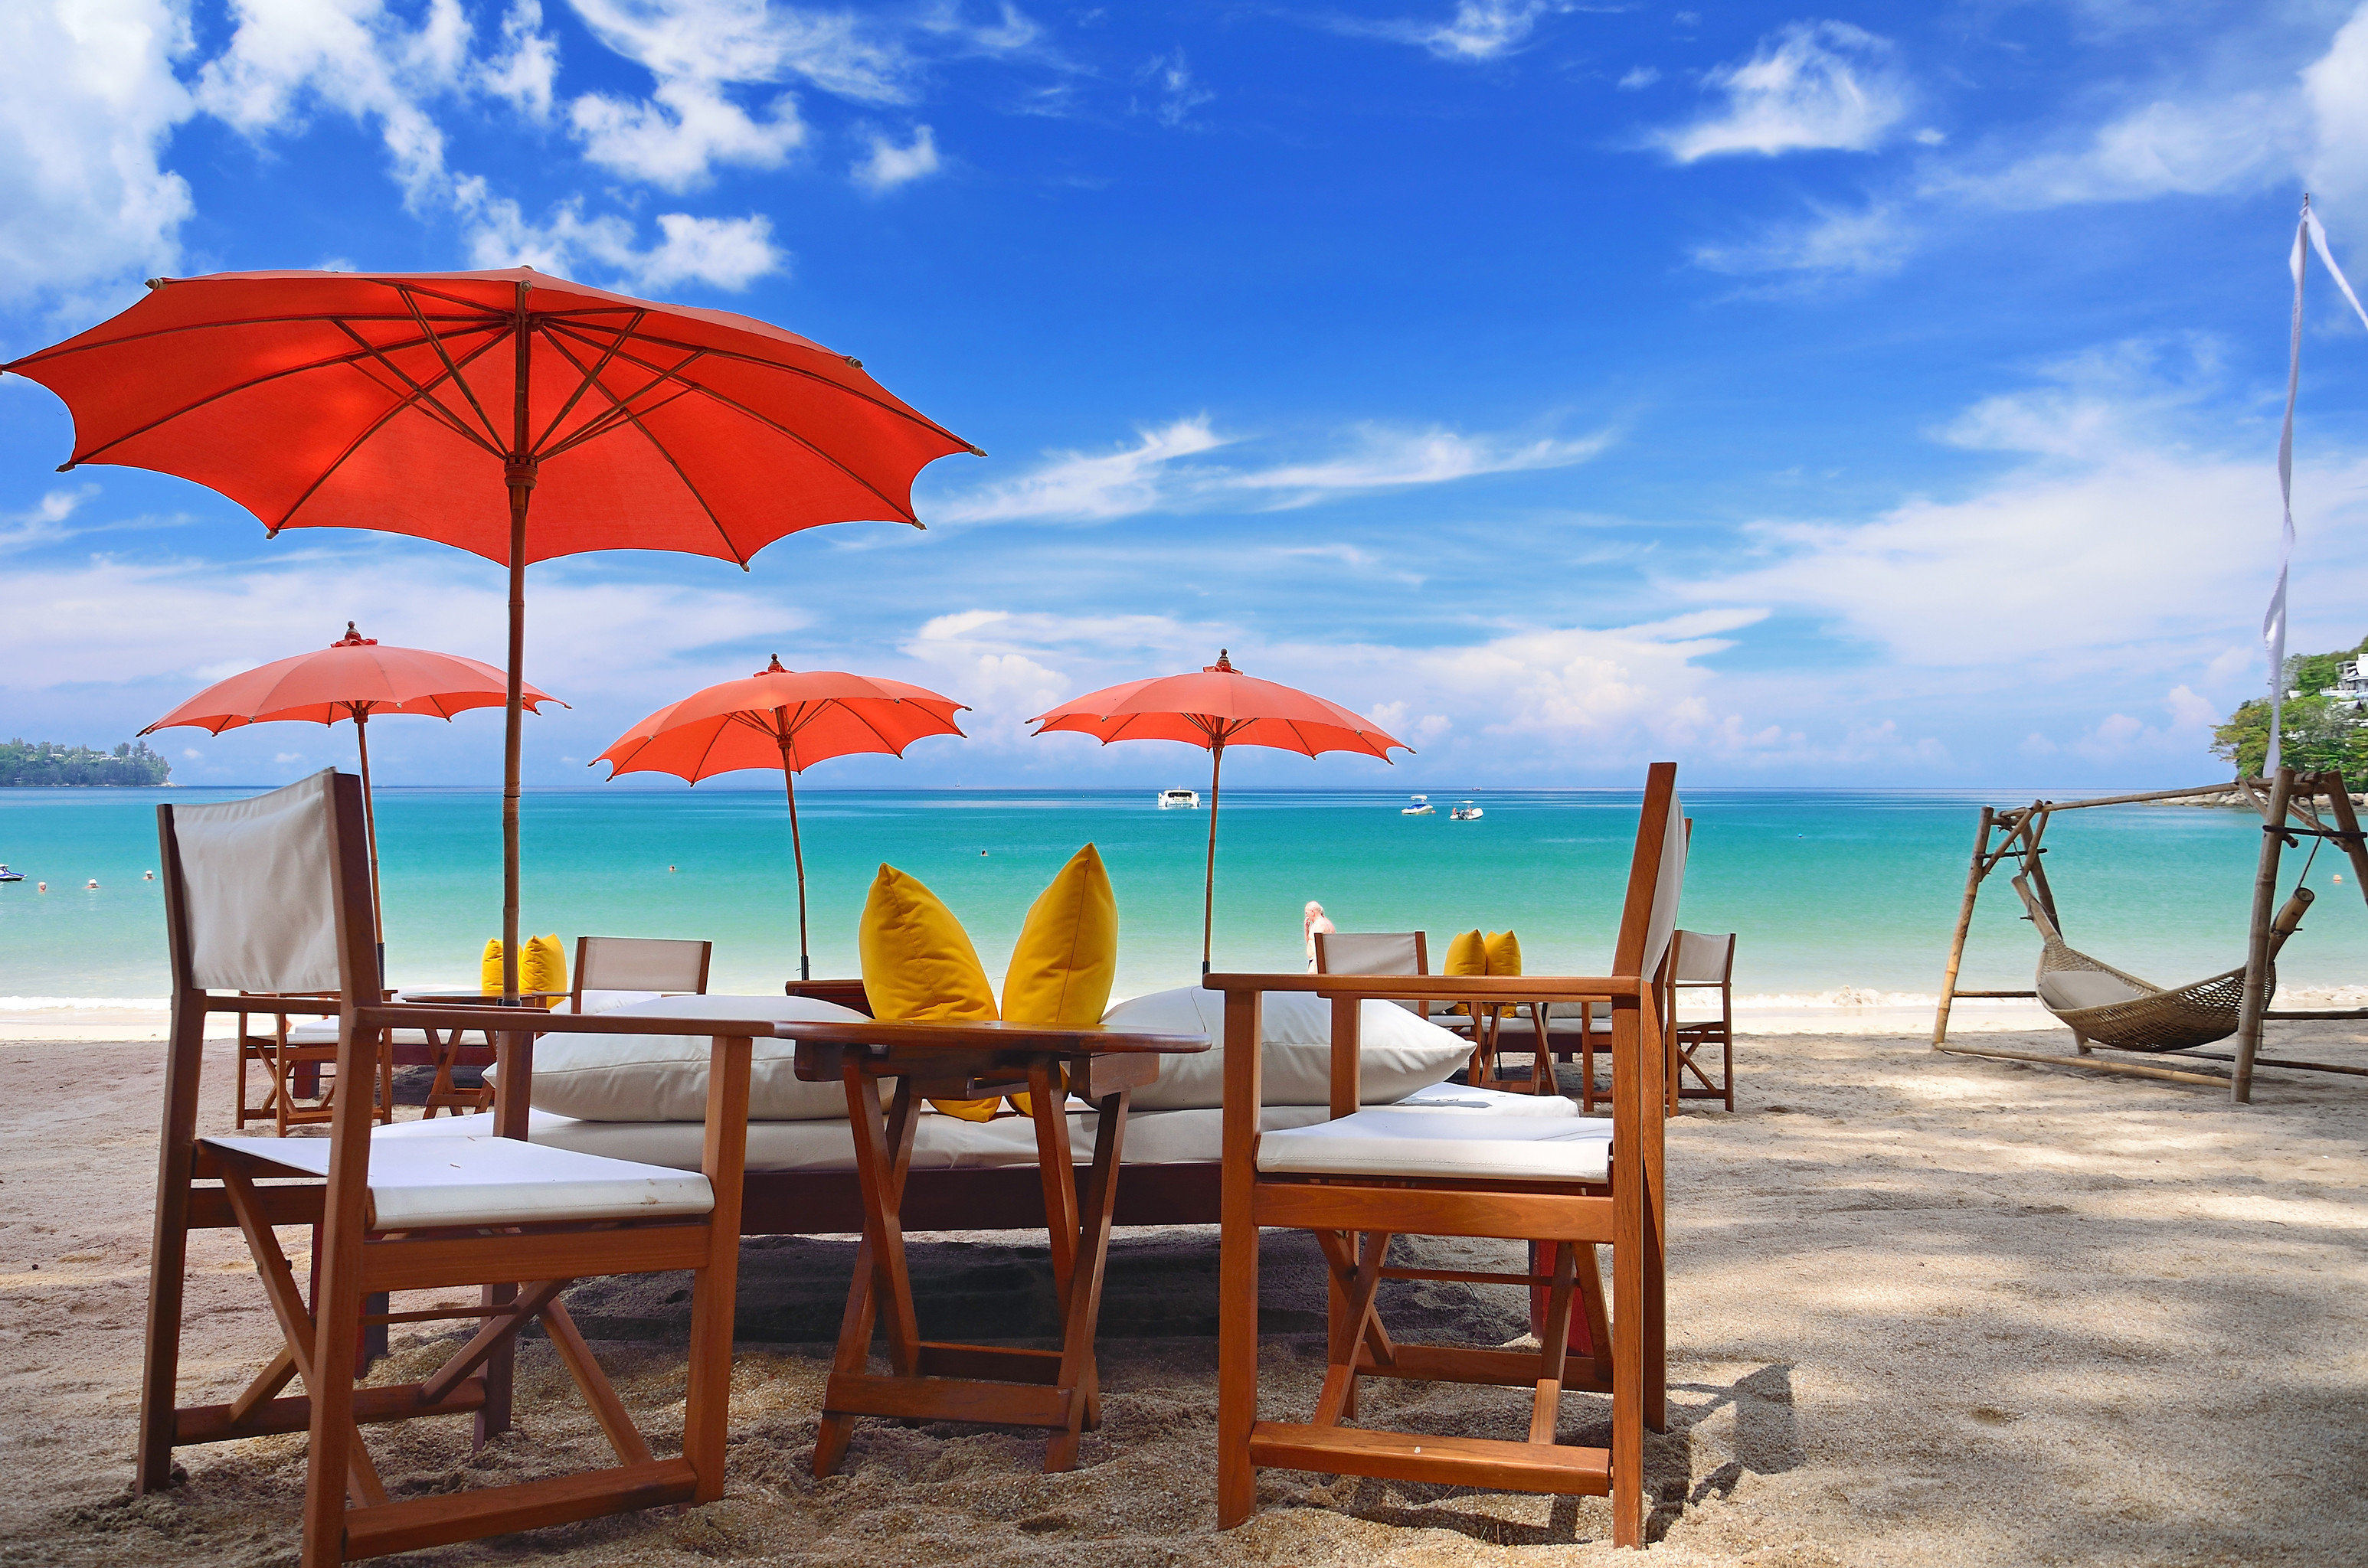 Beach Beachfront Hotels Lounge Ocean Outdoors Romance Tropical accessory sky umbrella chair leisure Nature rain caribbean Sea Resort shore day